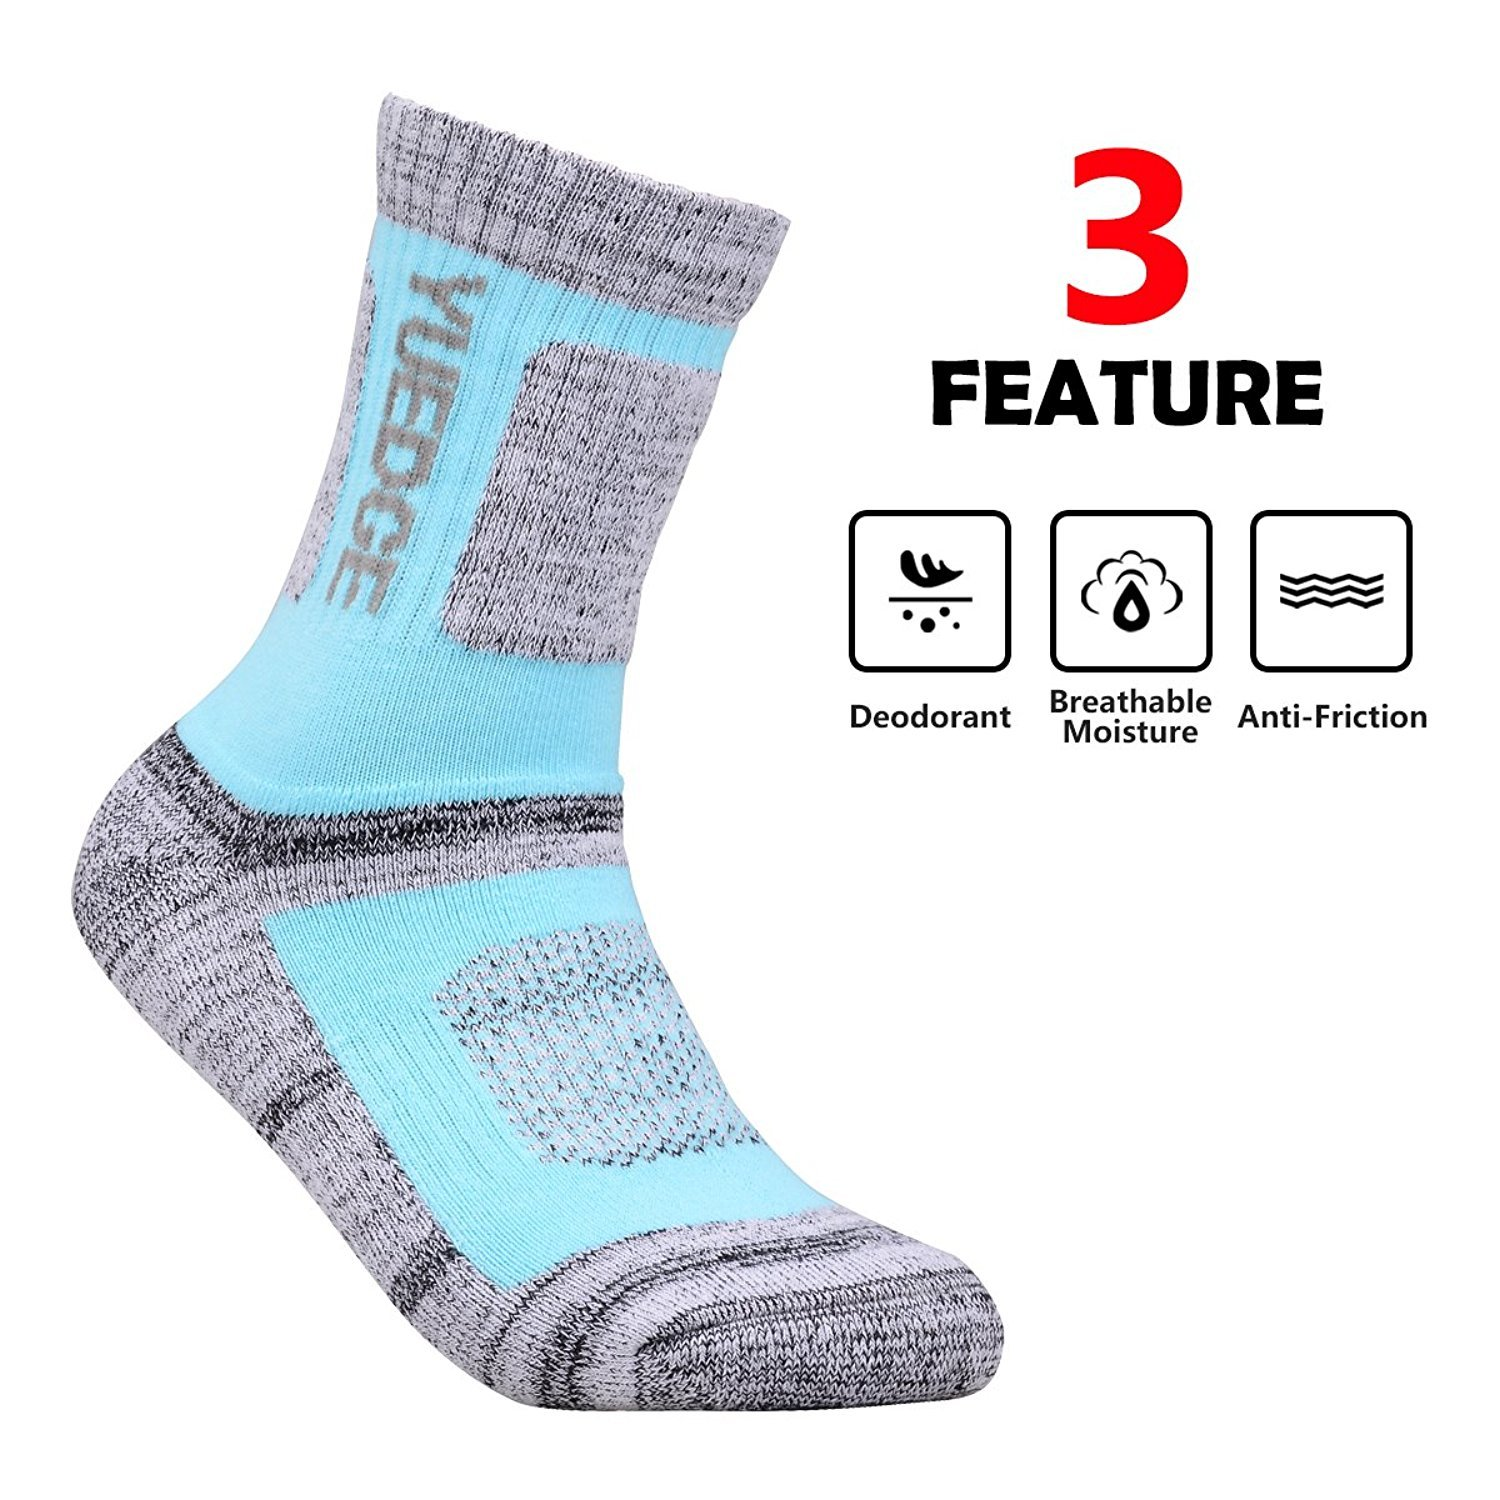 YUEDGE Women's 5 Pairs Wicking Cushion Anti Blister Outdoor Crew Socks for Hiking Walking Running Climbing Backpacking Skiing Year Round(L) by YUEDGE (Image #2)